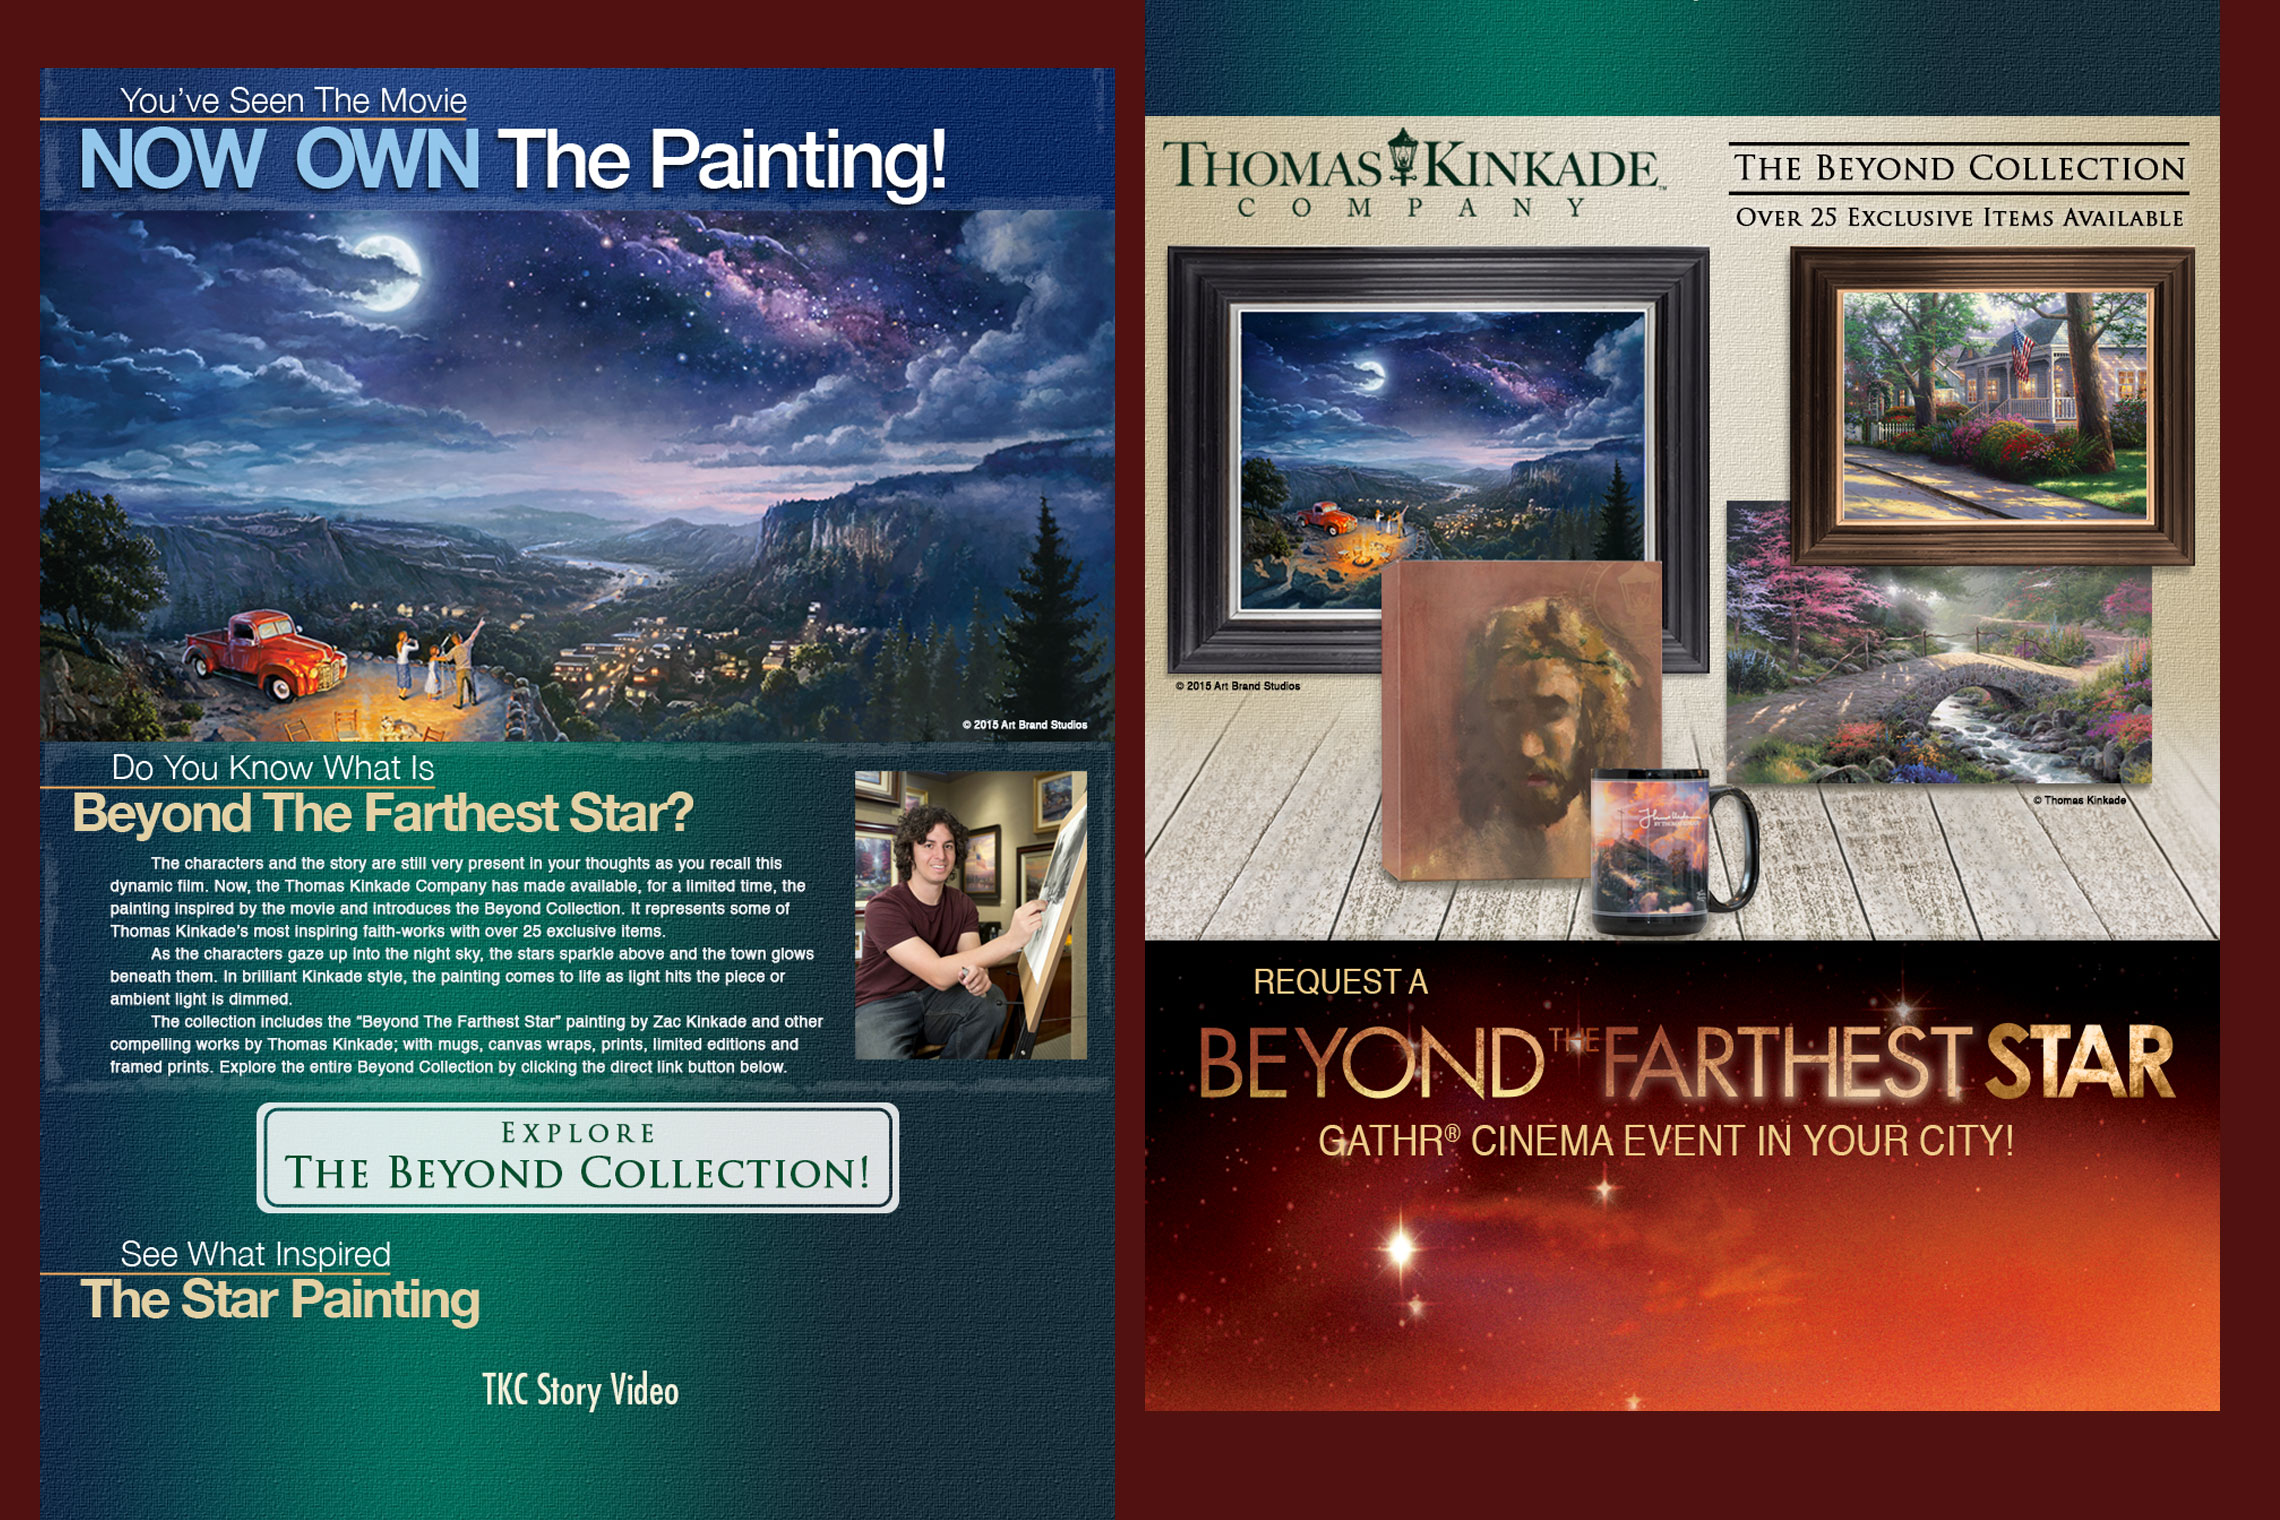 Beyond the Farthest Star Thomas Kinkade Company Painting Flyer